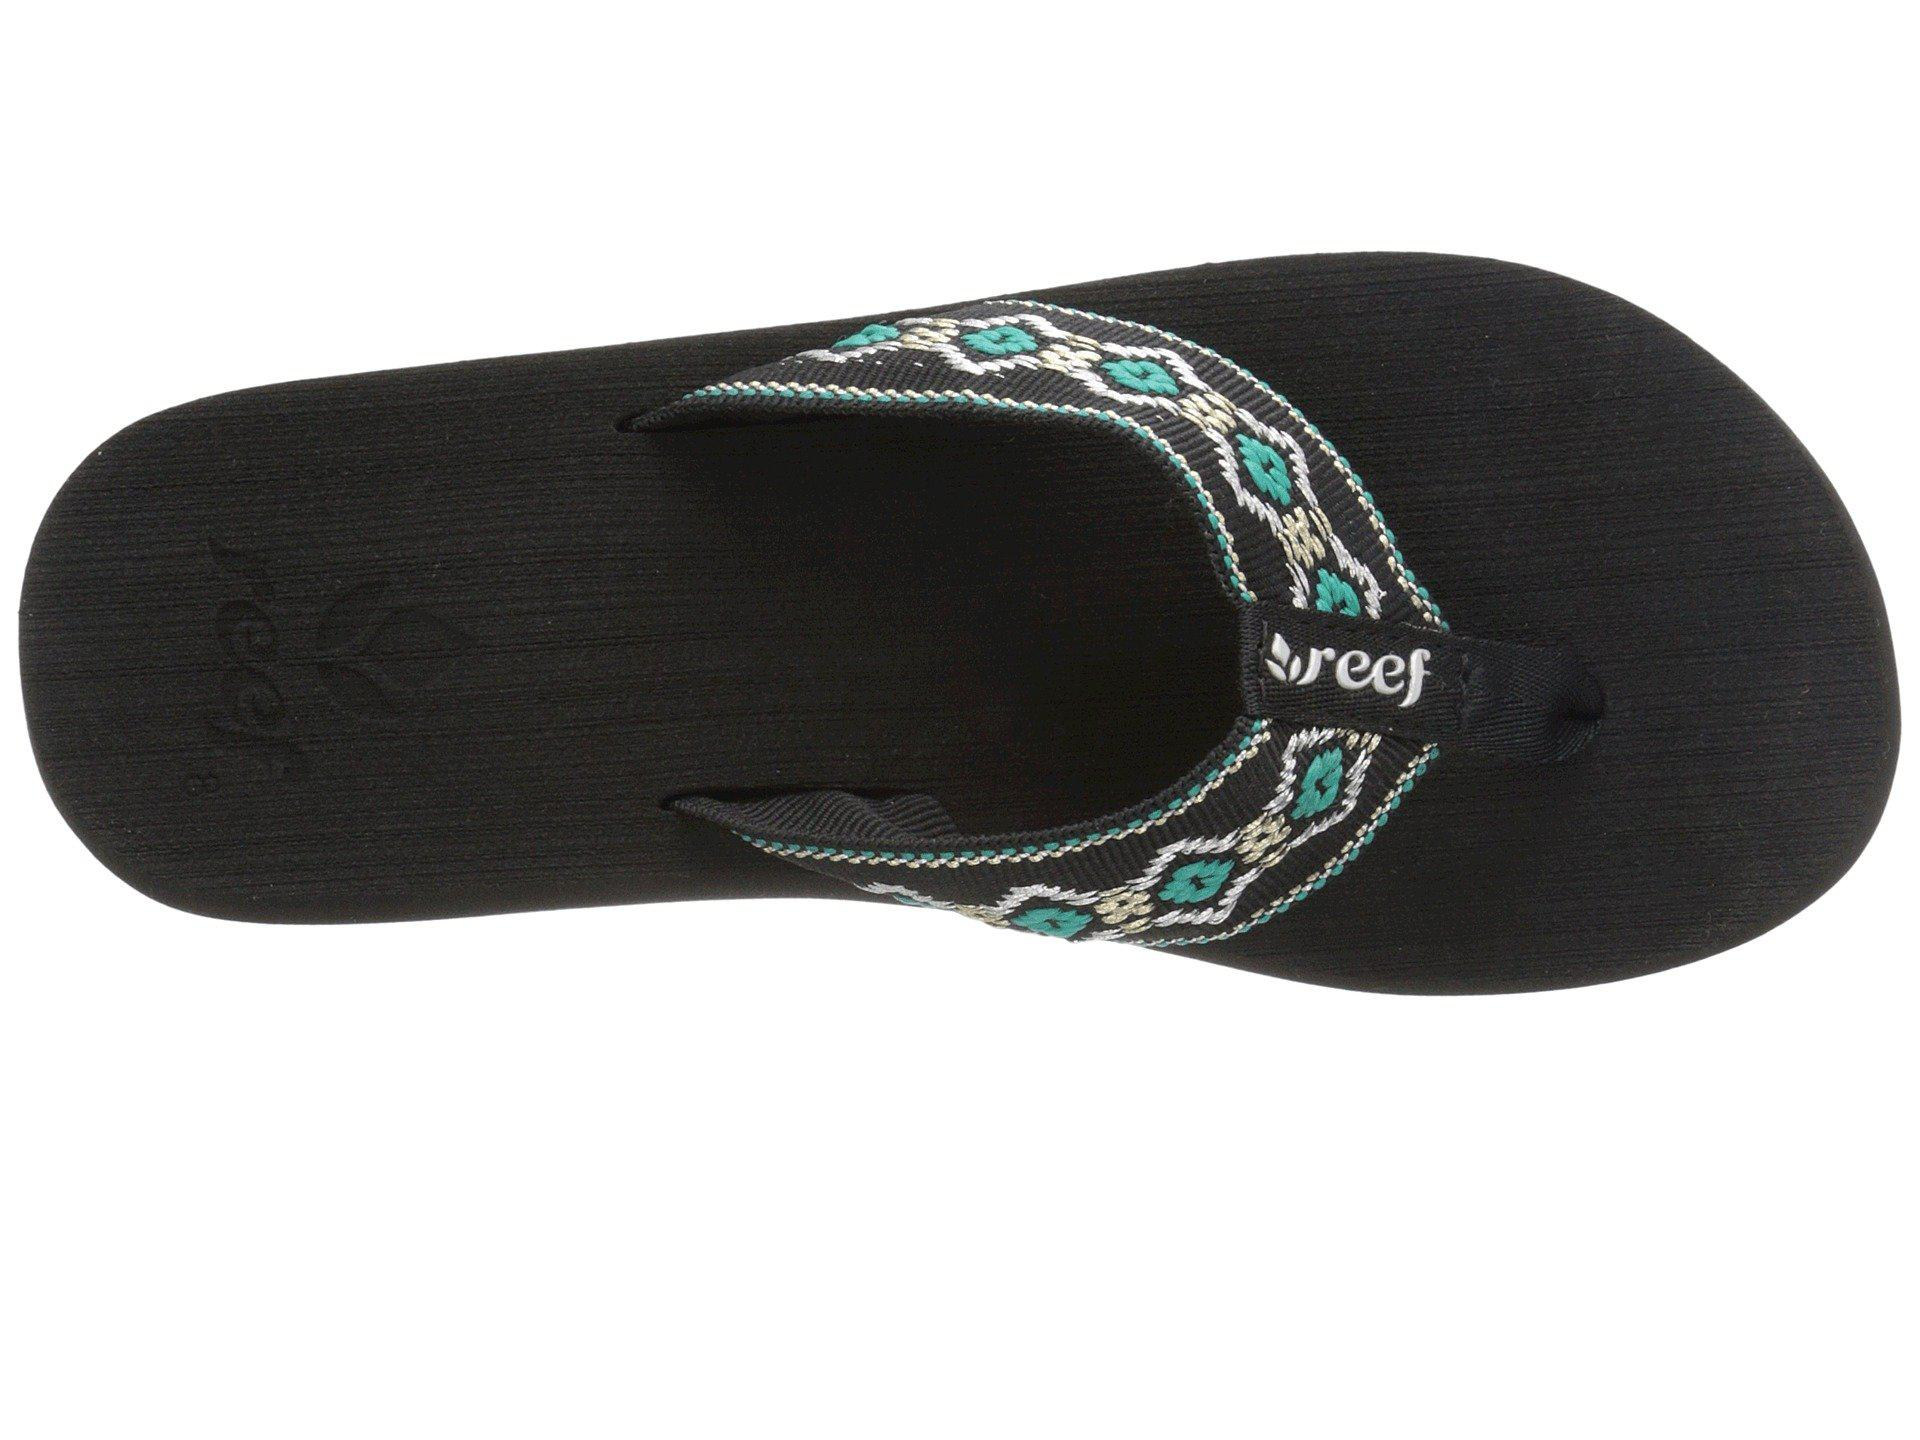 7f9462bf27be Lyst - Reef Sandy in Black - Save 19%